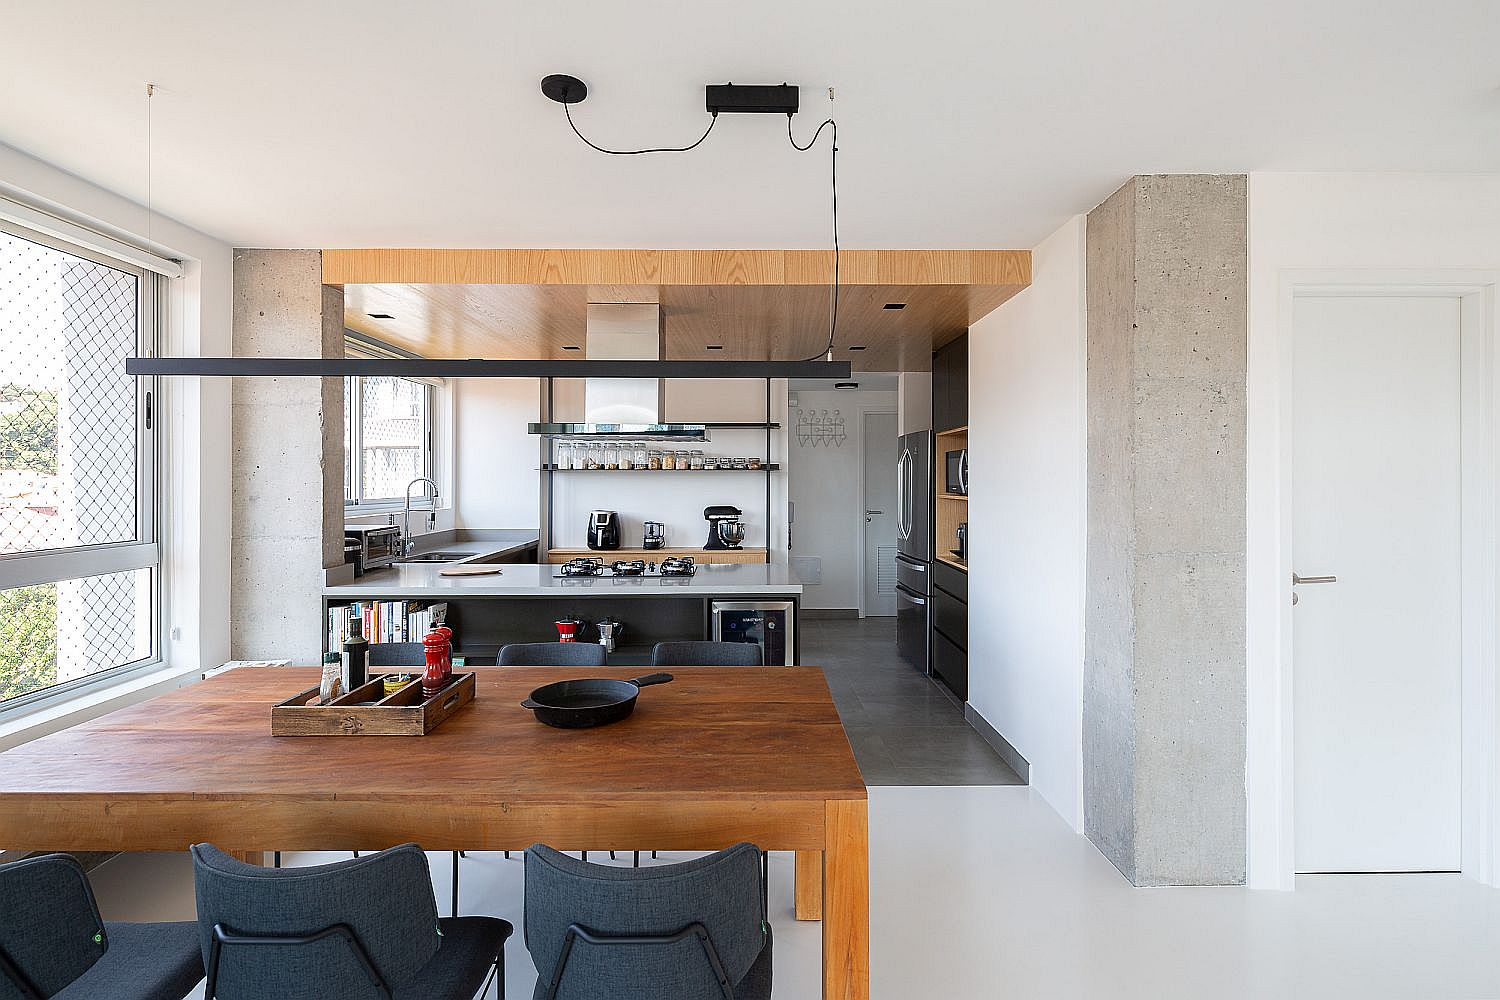 Wooden ceiling and a change in floor delineates the kitchen from the living area and dining space